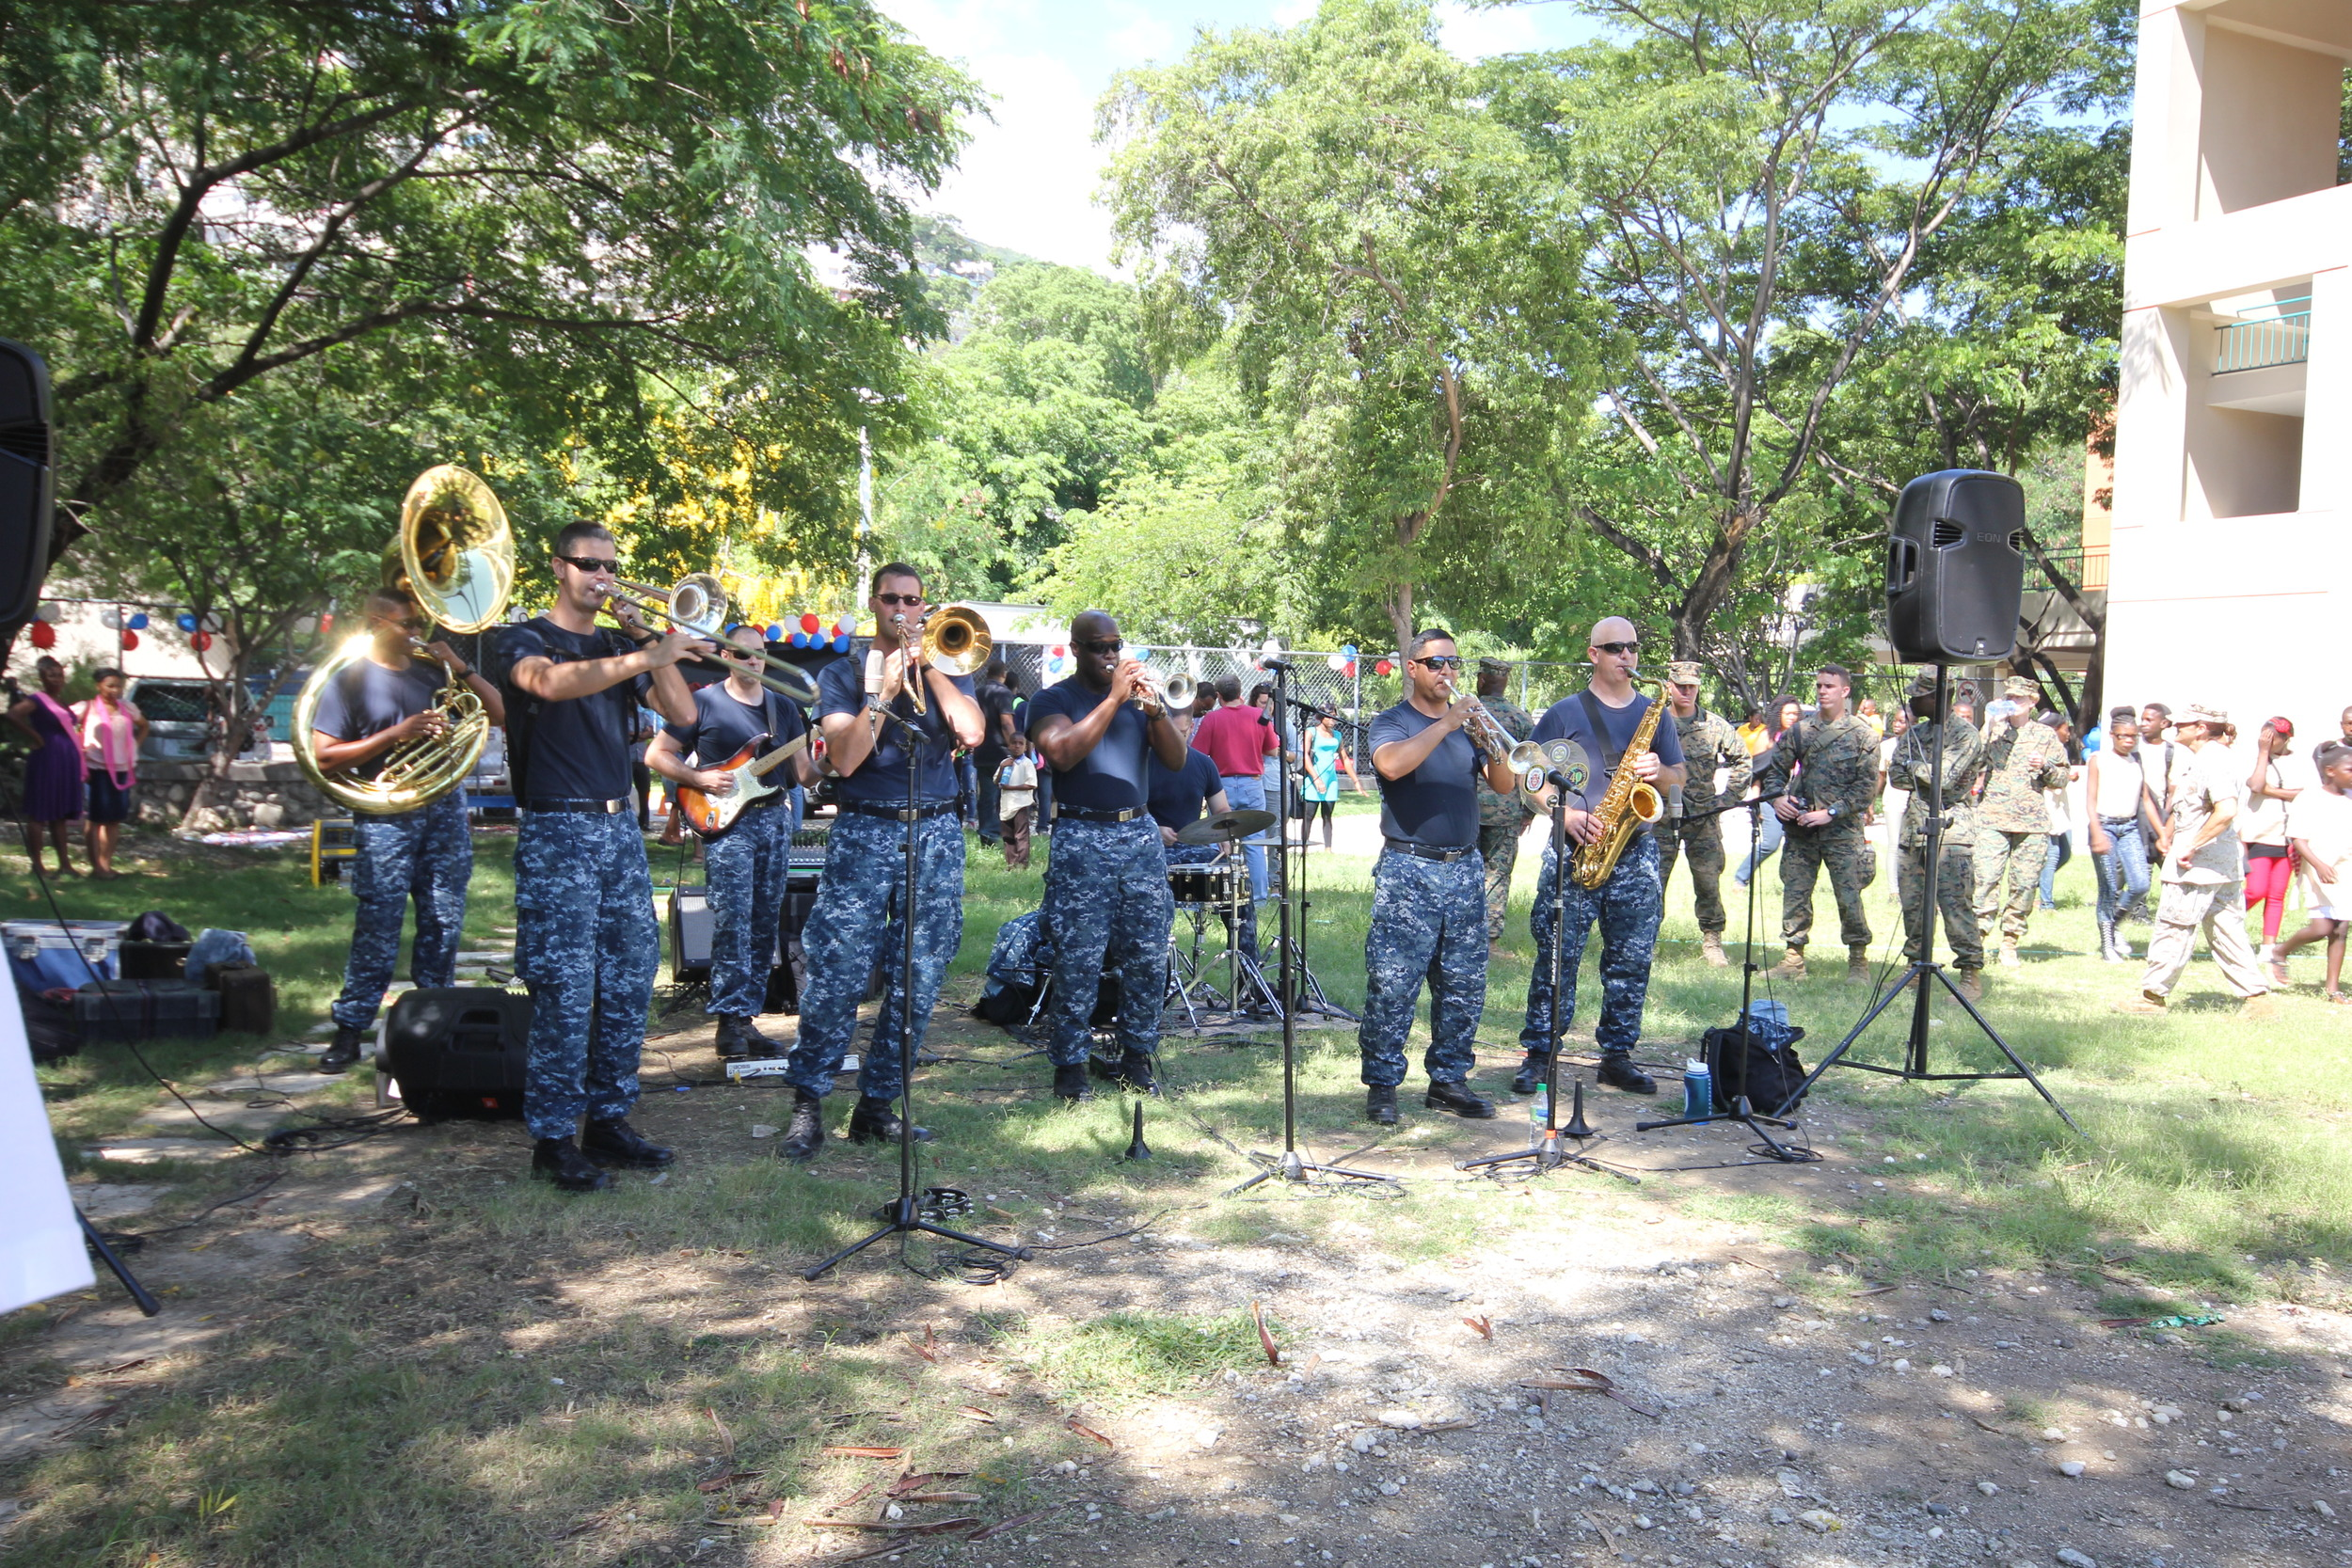 The US Navy band performed jazz and hip hop hits.     (Photo credit: Jacqueline Ofriel)